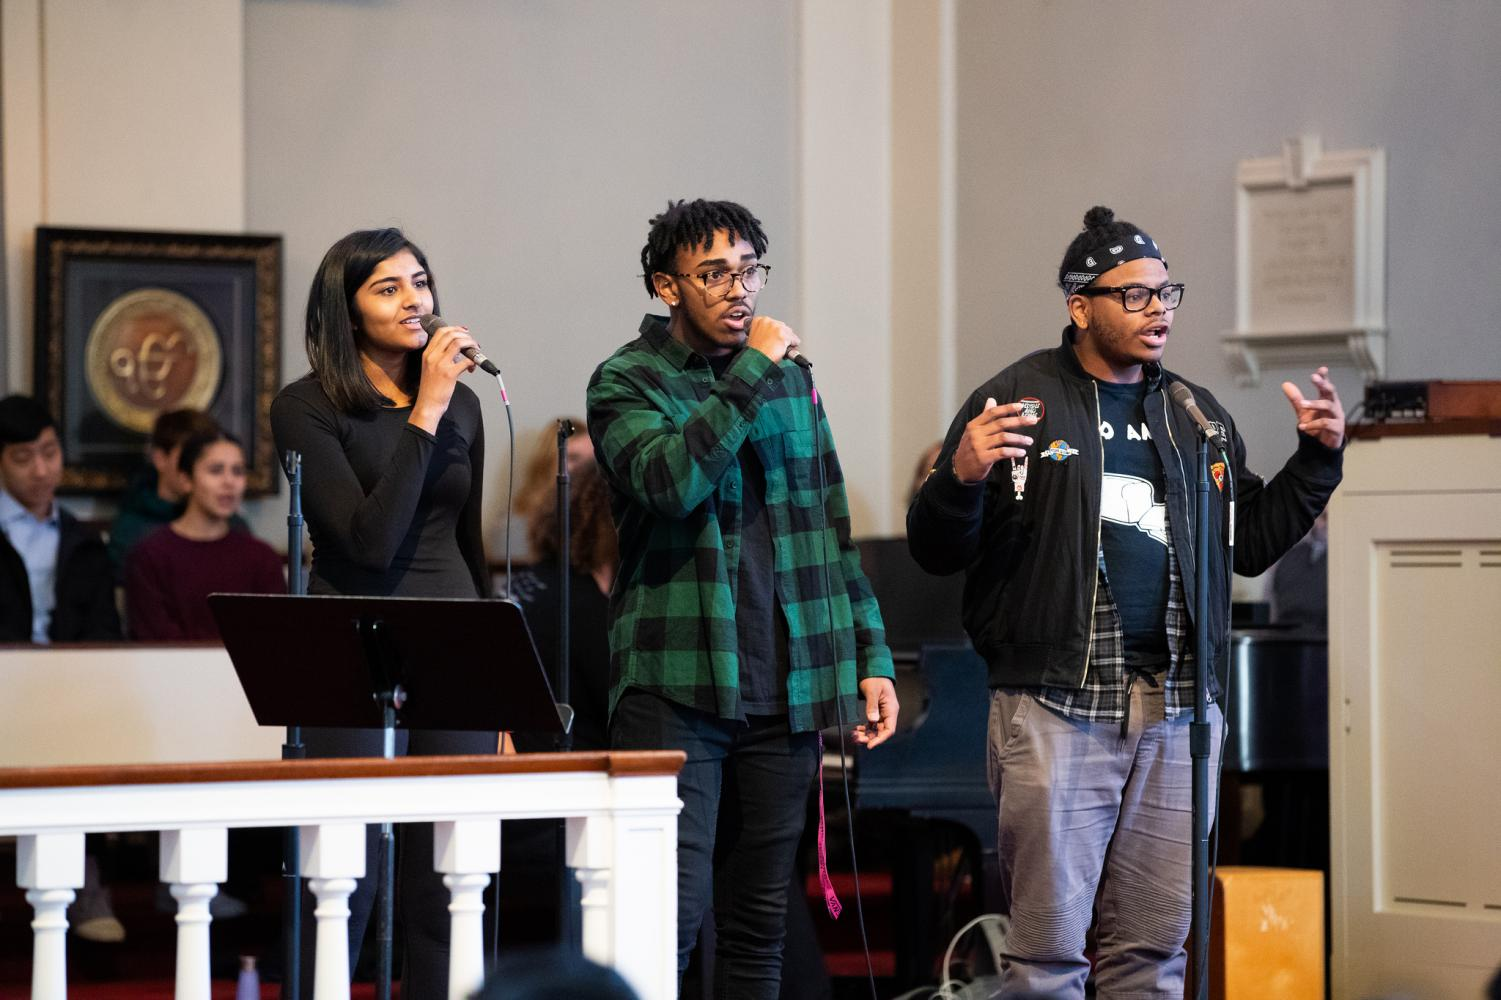 From left to right: Kavya Borra '20, Zion Henriques '20, and Daniel Funderbirk '20 preforming